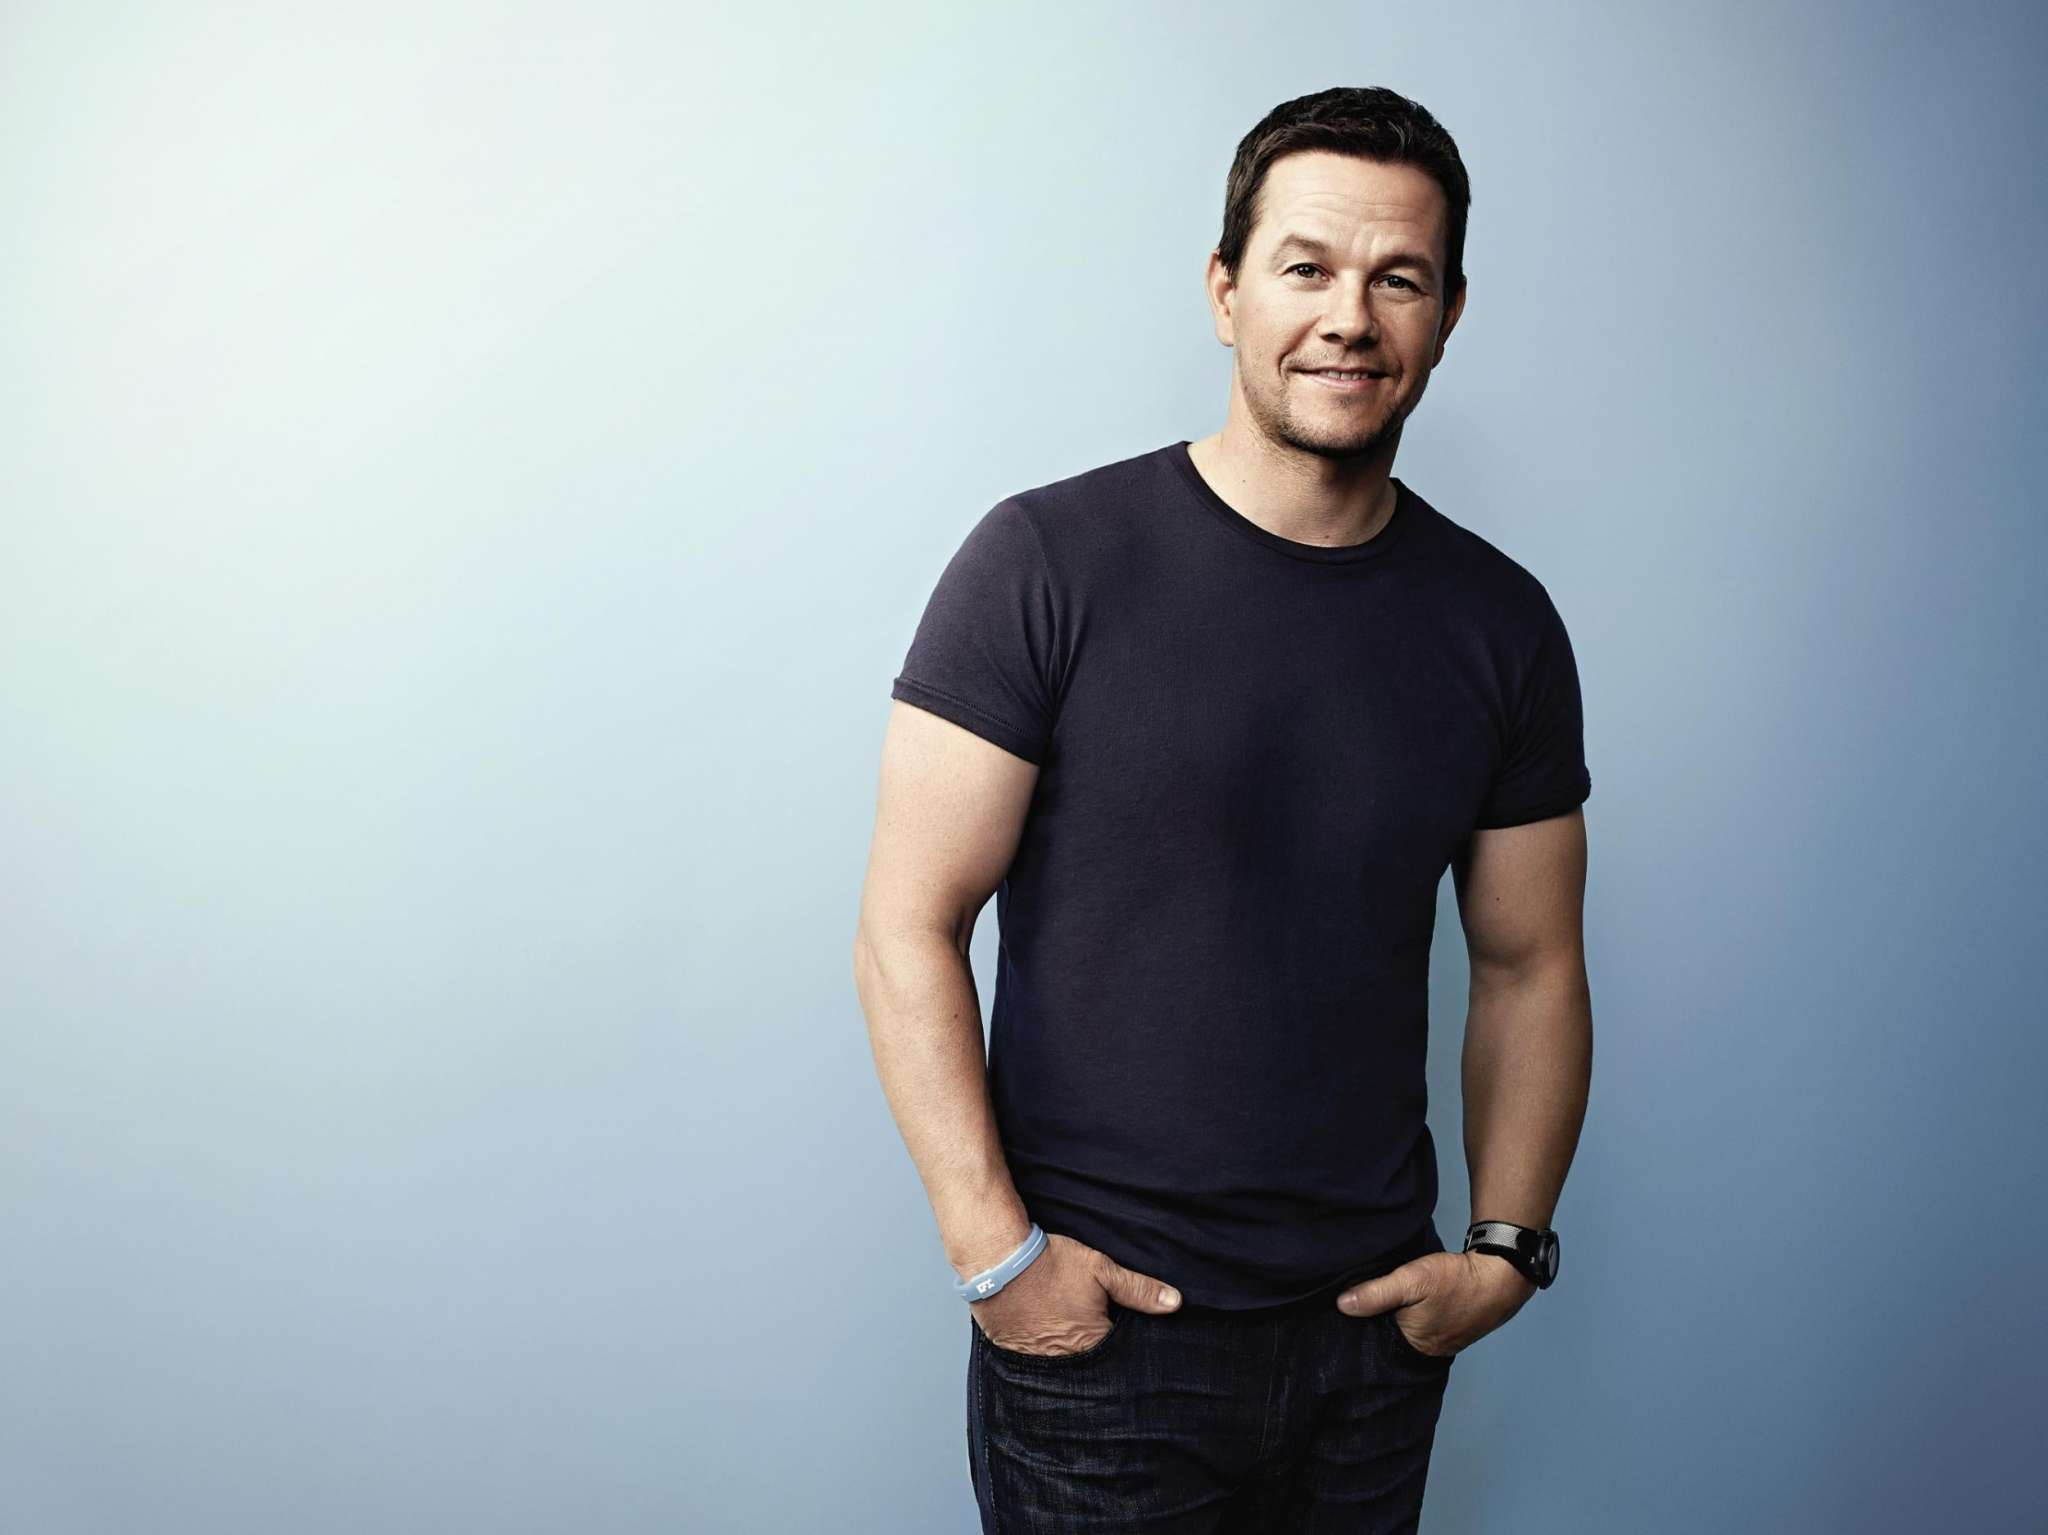 """mark-wahlberg-is-excited-for-new-role-that-requires-him-to-gain-a-lot-of-weight-heres-how-he-plans-to-do-it"""